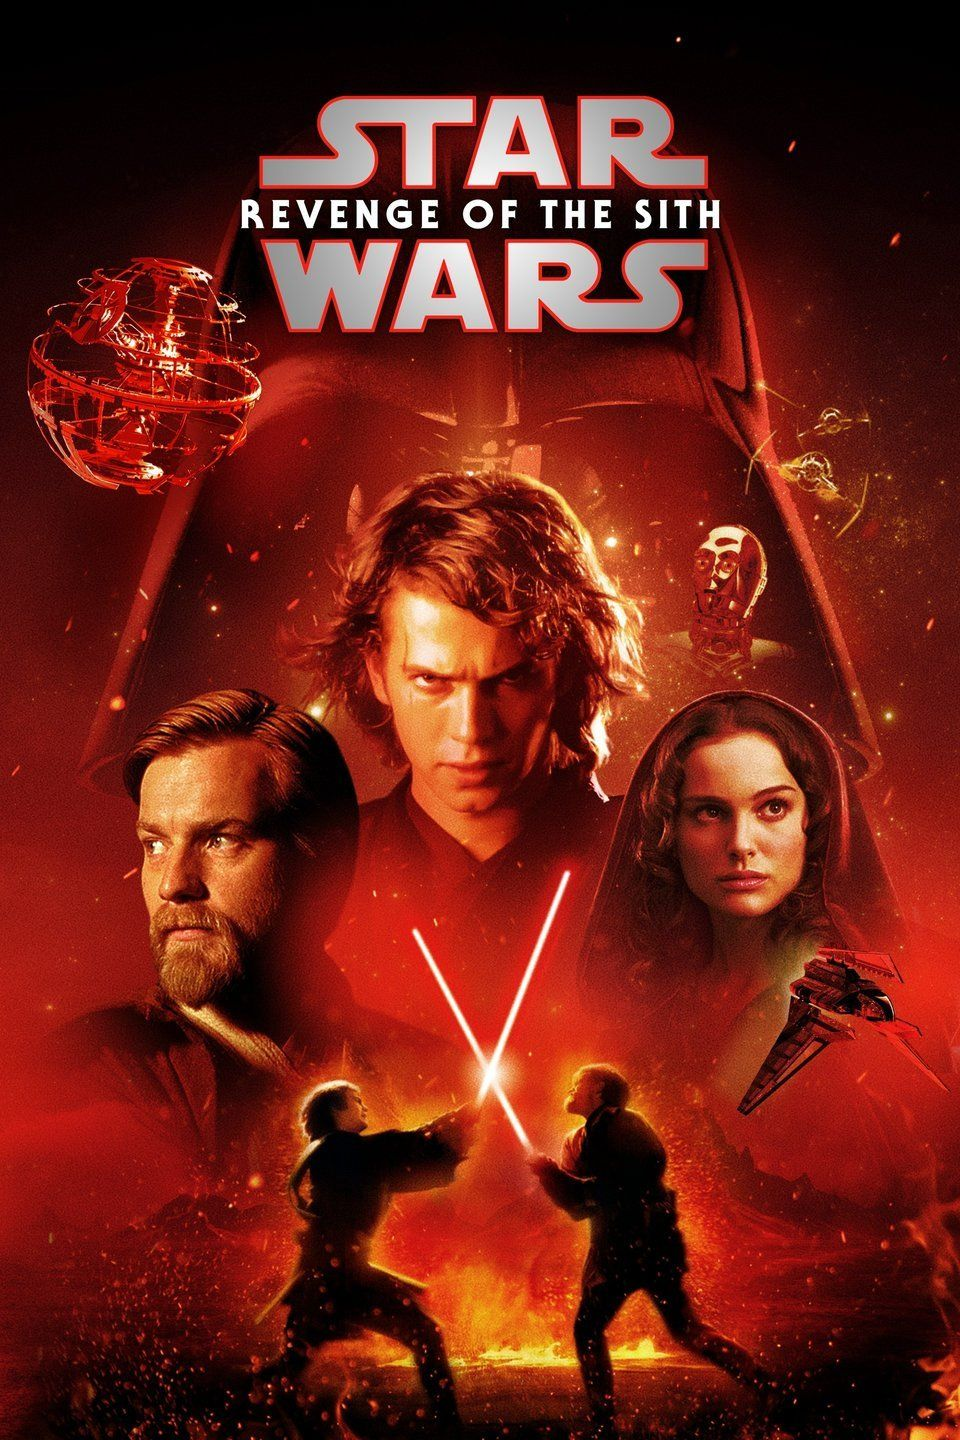 Star Wars Revenge Of The Sith Star Wars Movies Posters Star Wars Movie Star Wars Poster